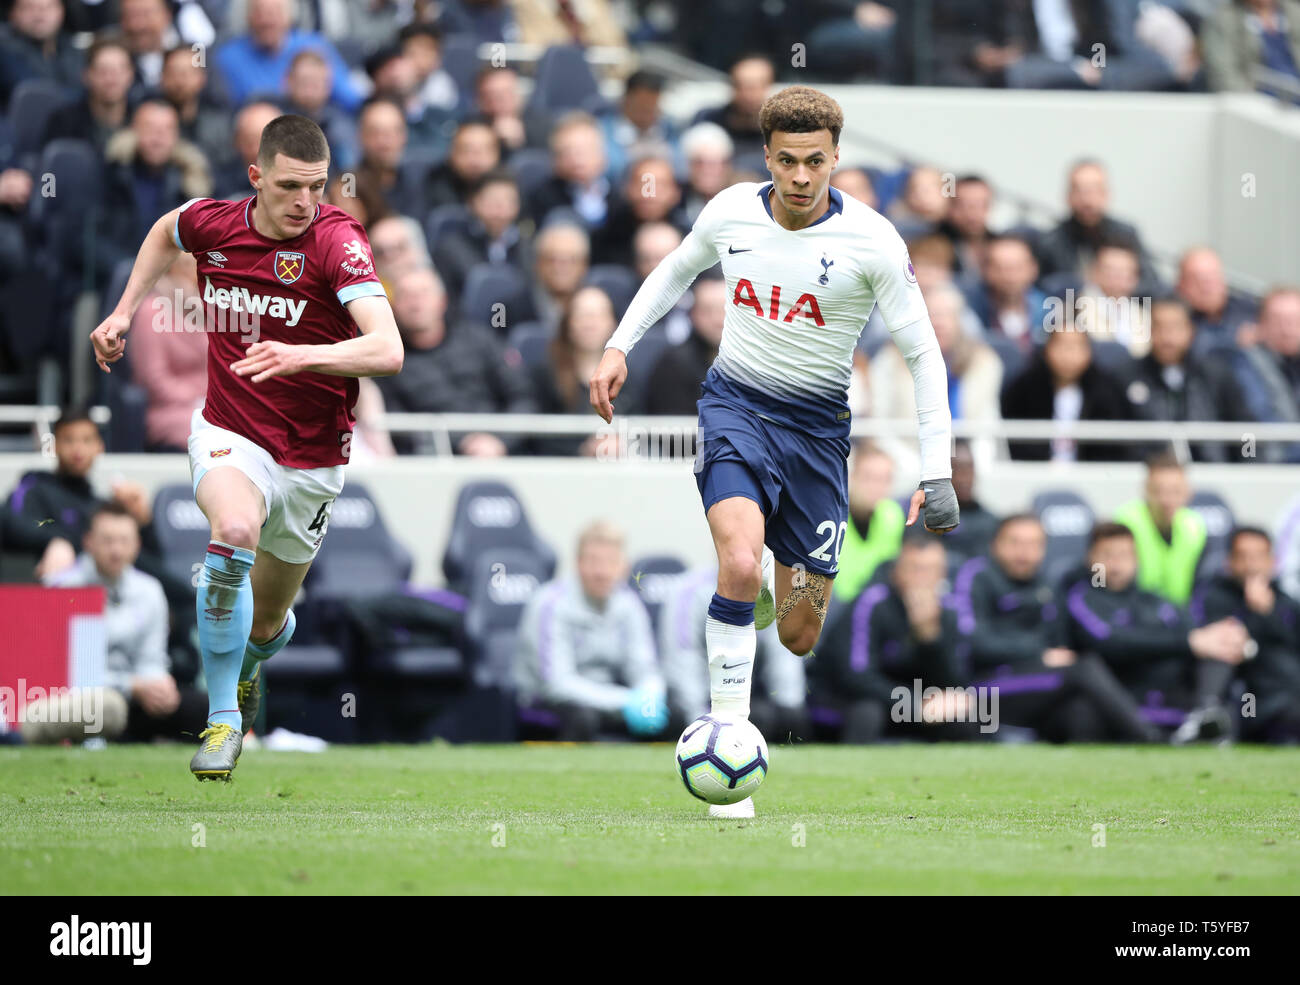 London, UK. 27th Apr 2019. Declan Rice (WHU) Dele Alli (TH) at the Tottenham Hotspur v West Ham United English Premier League match, at The Tottenham Hotspur Stadium, London, UK on April 27, 2019. **Editorial use only, license required for commercial use. No use in betting, games or a single club/league/player publications** Credit: Paul Marriott/Alamy Live News - Stock Image